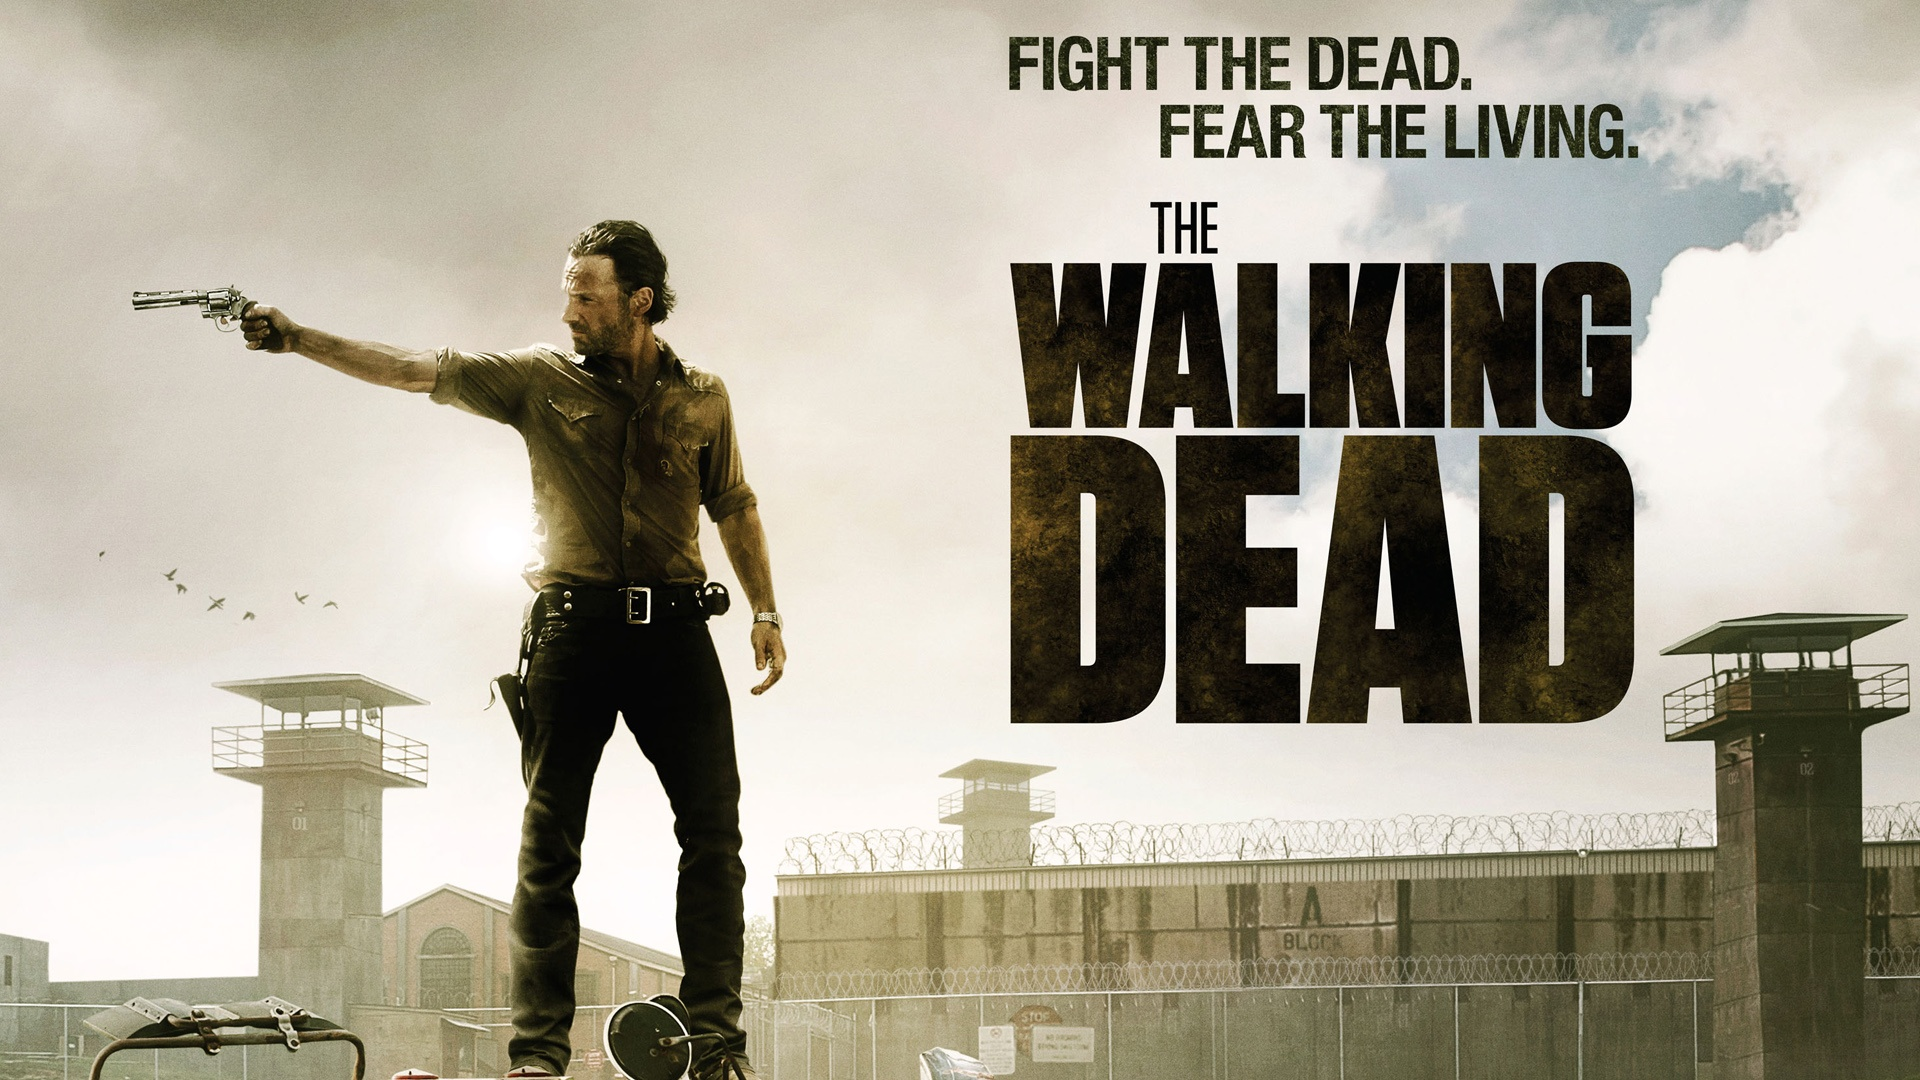 free the walking dead wallpapers273 The Walking Dead Wallpapers The Walking Dead Backgrounds HqE4htiK